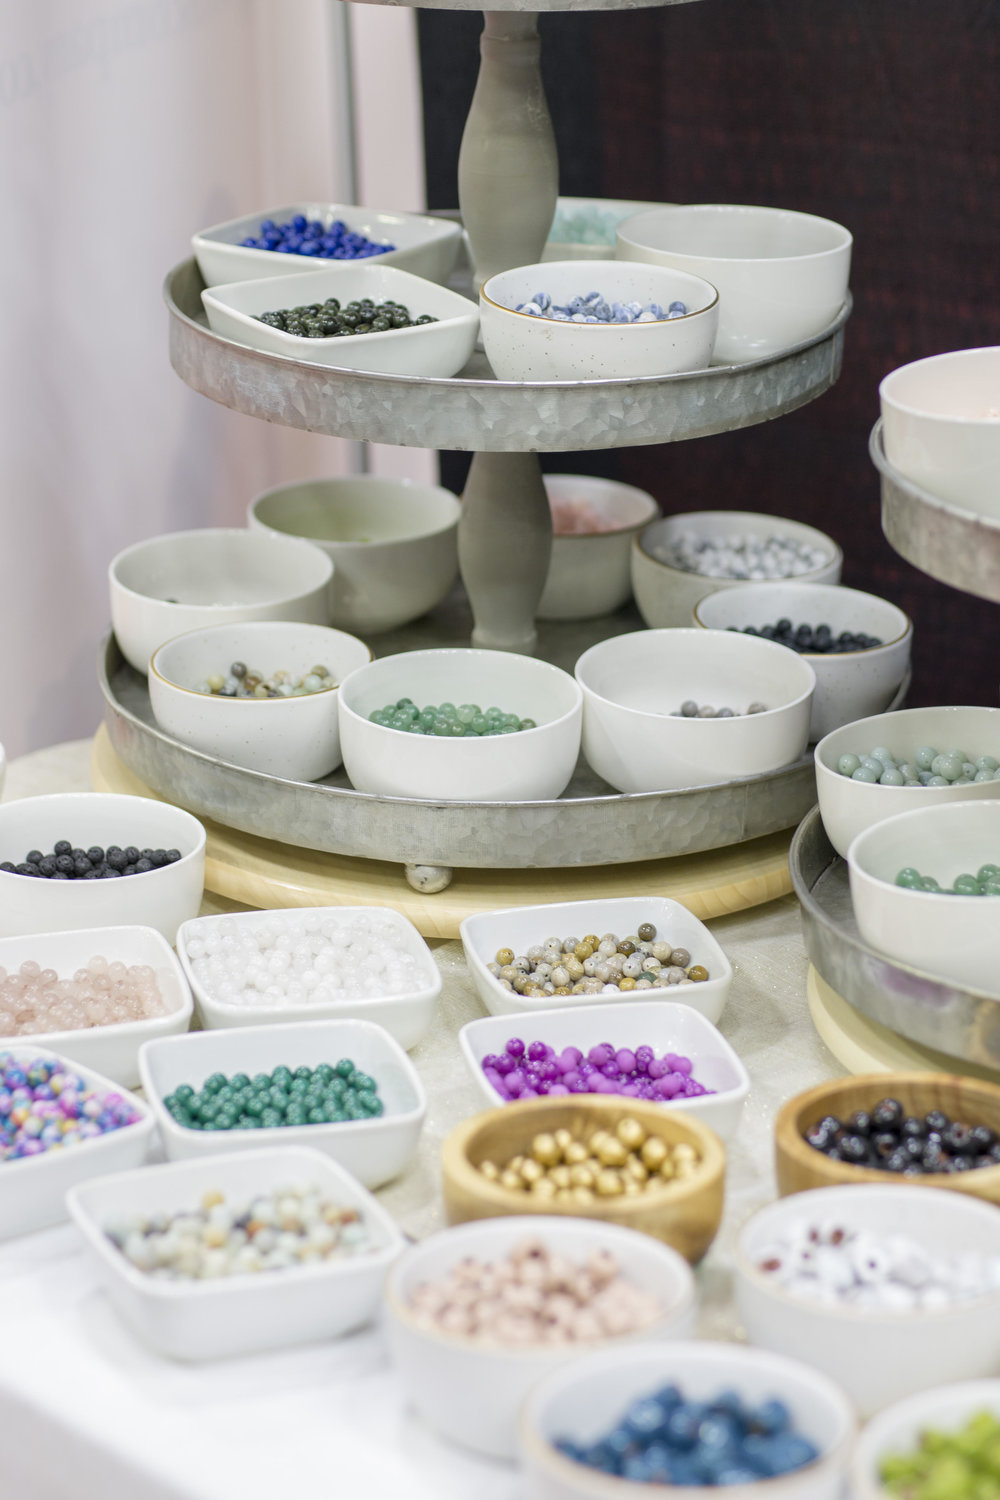 Bracelet Bar Gathered Goods.jpg